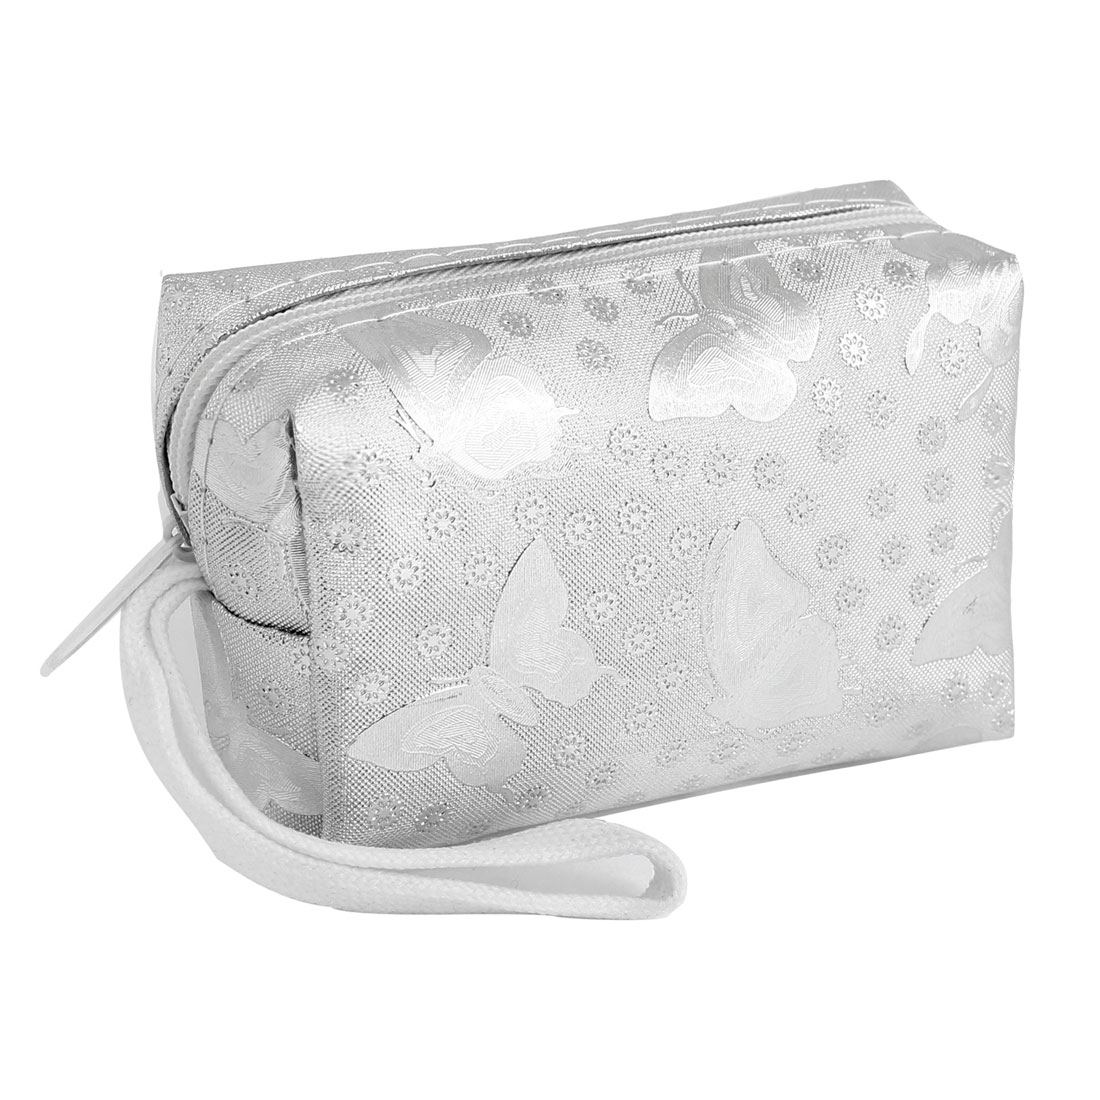 Small Floral Printed White Hand Strap Silver Tone Wallet